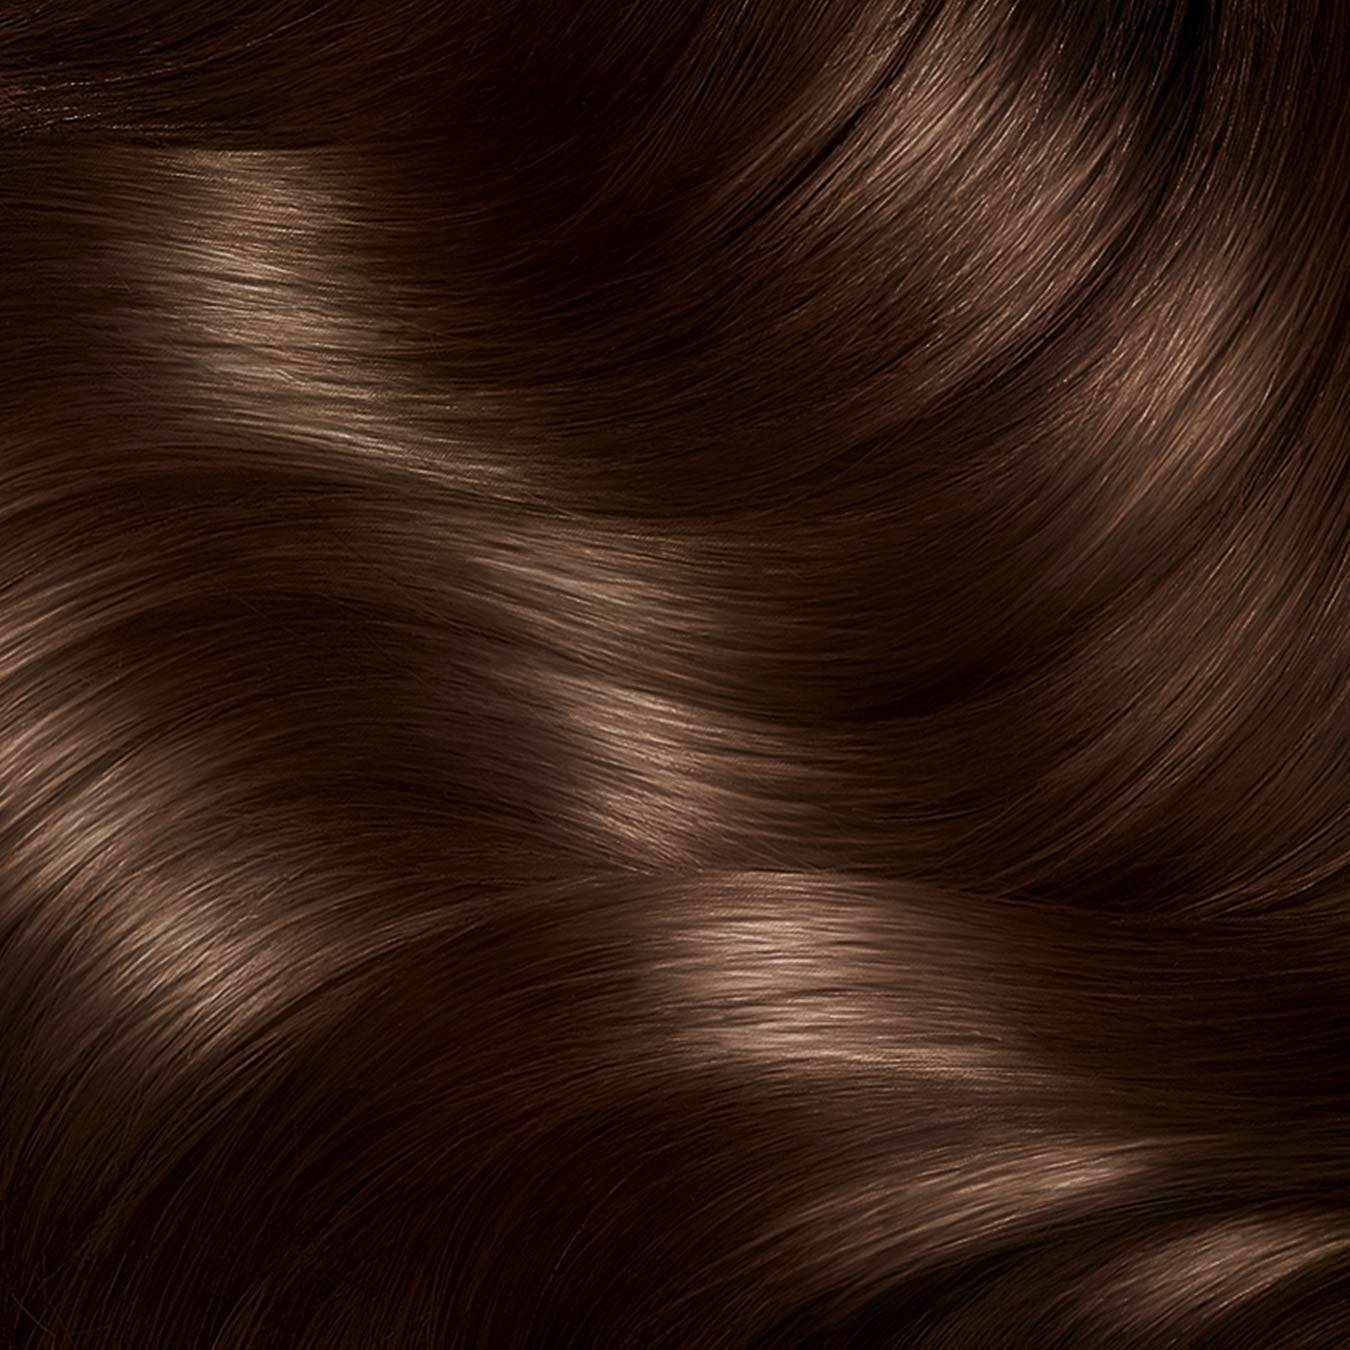 Hair Swatch of Express Retouch Light Brown.